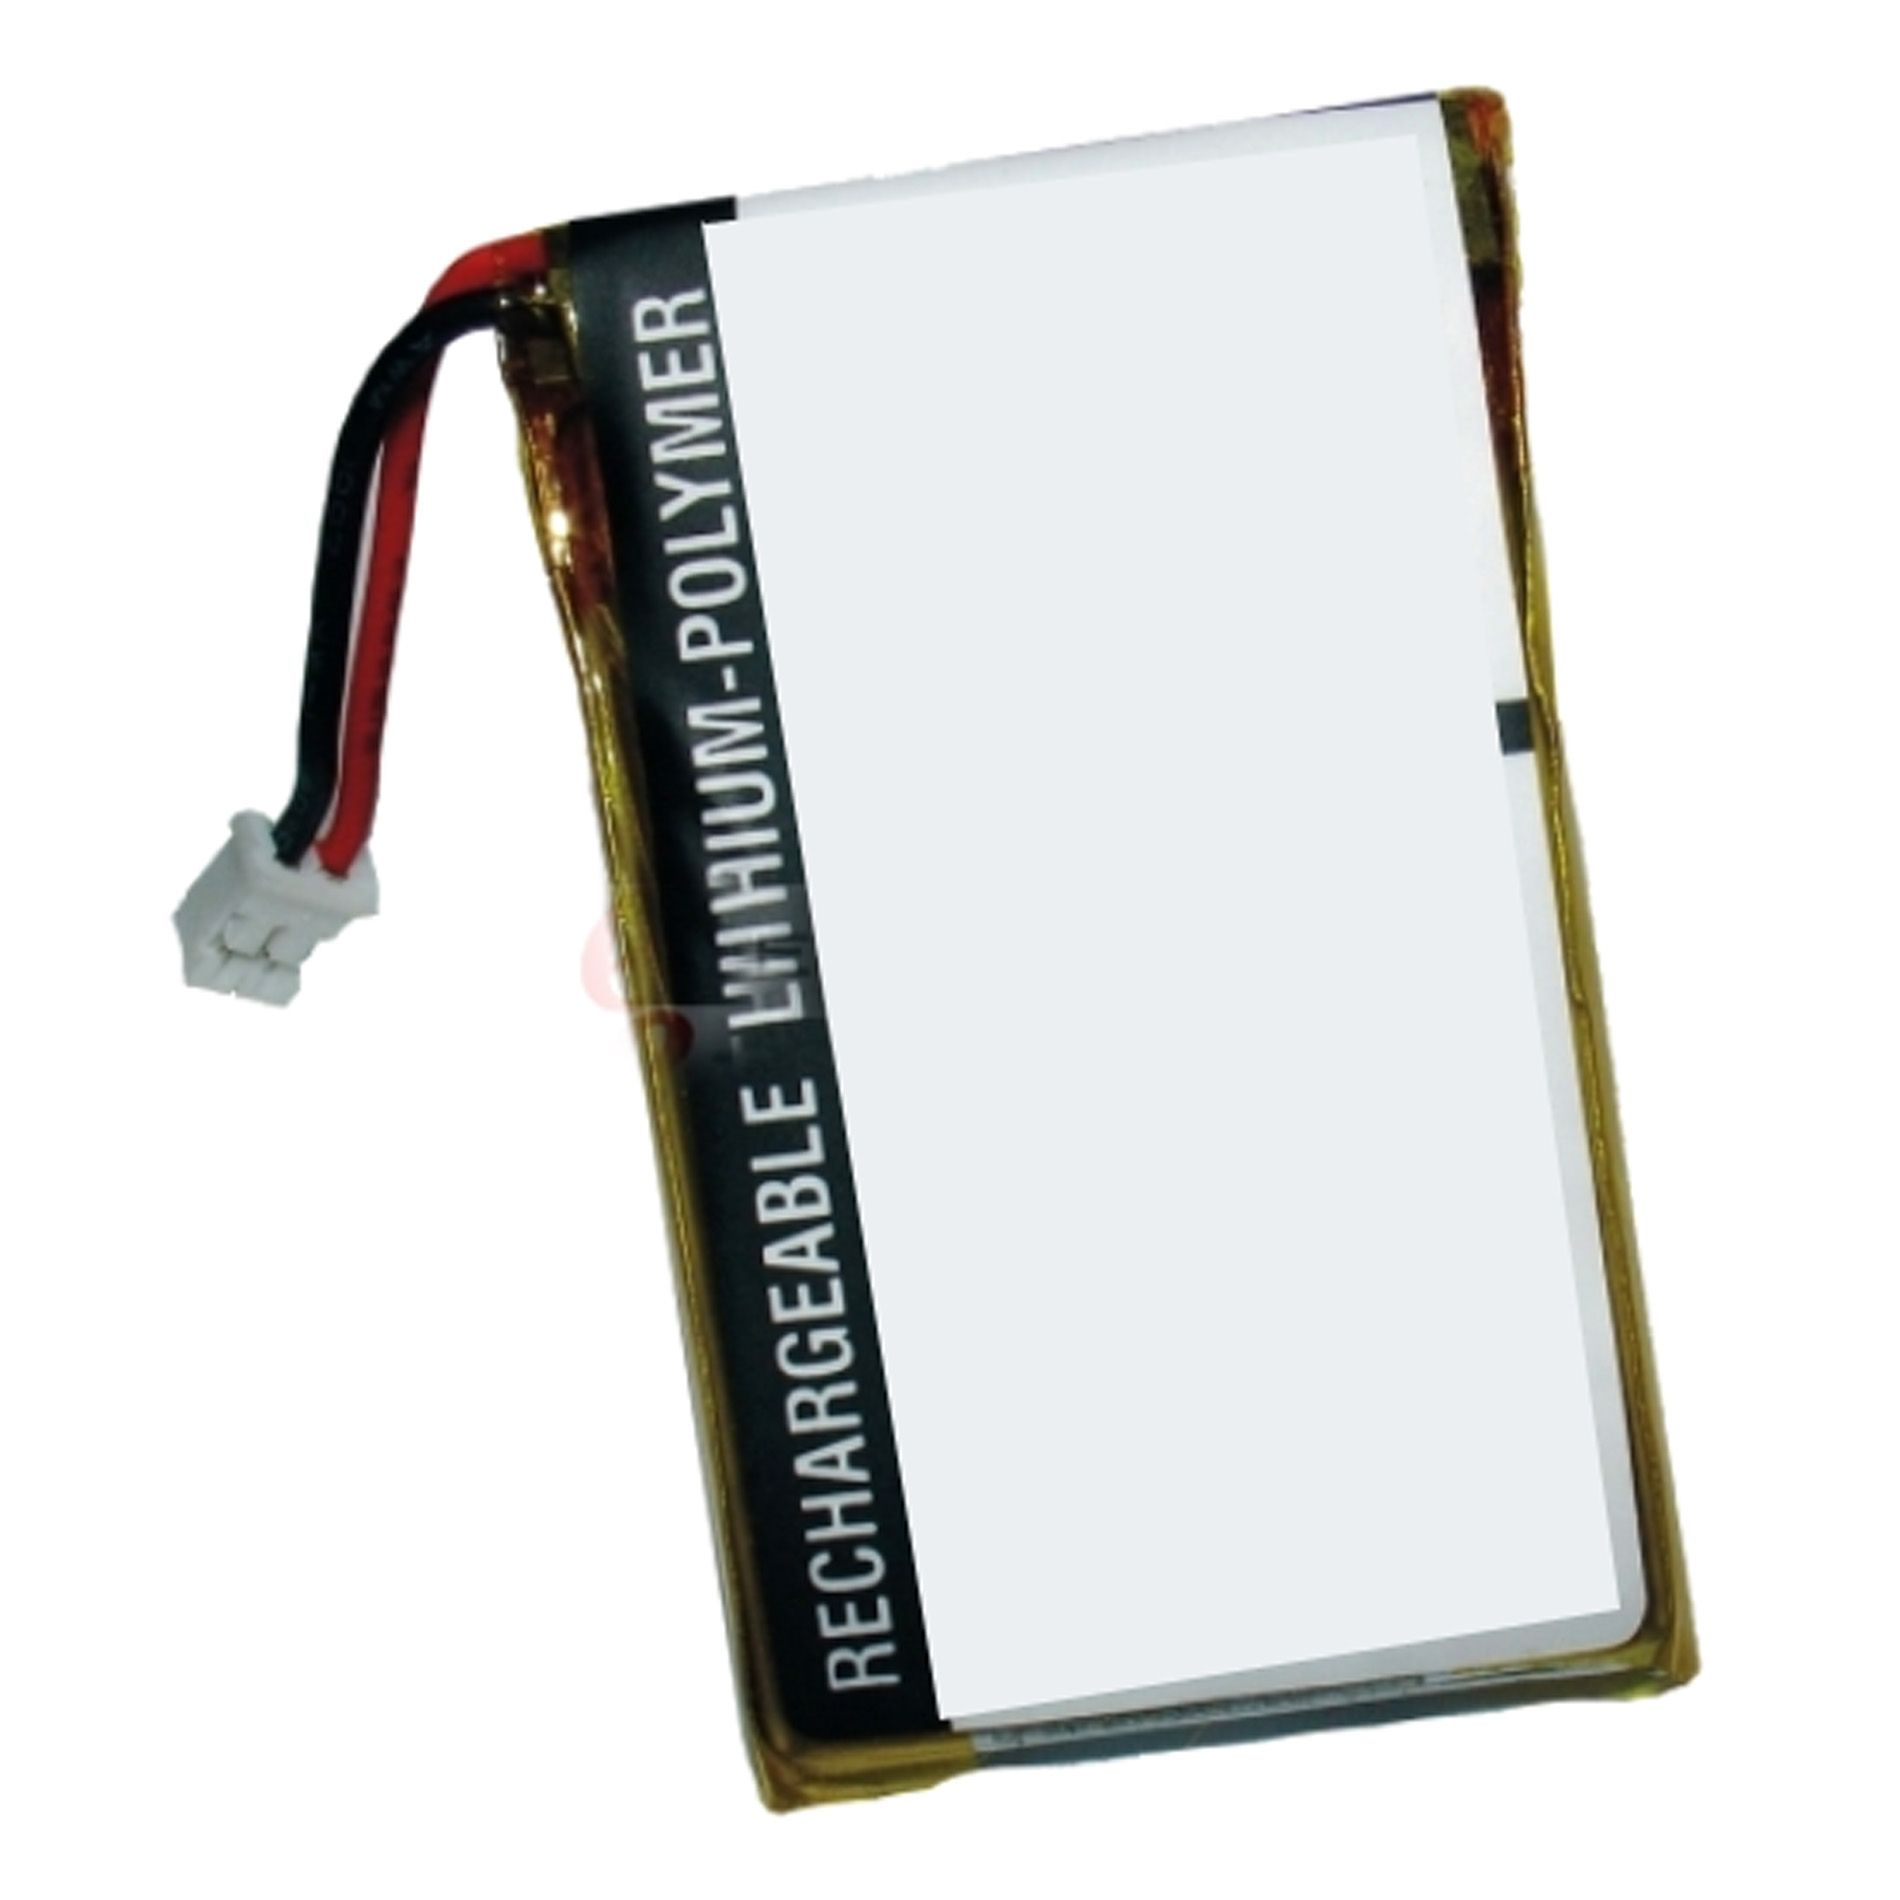 Sony PS3 3.70v Lithium Polymer Battery